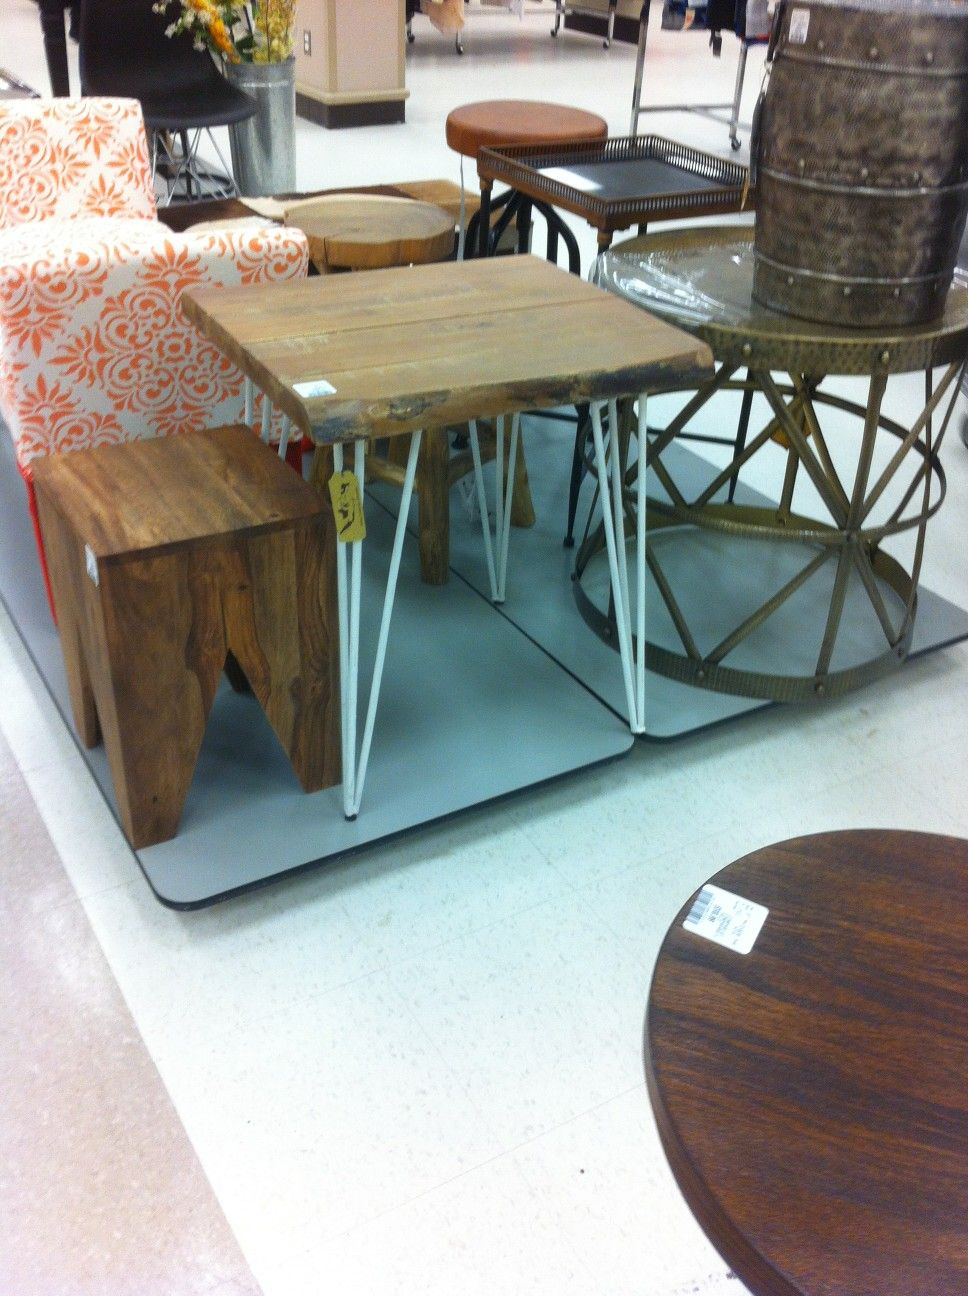 End table easy to make with round bar and wood. | Welding projects ...